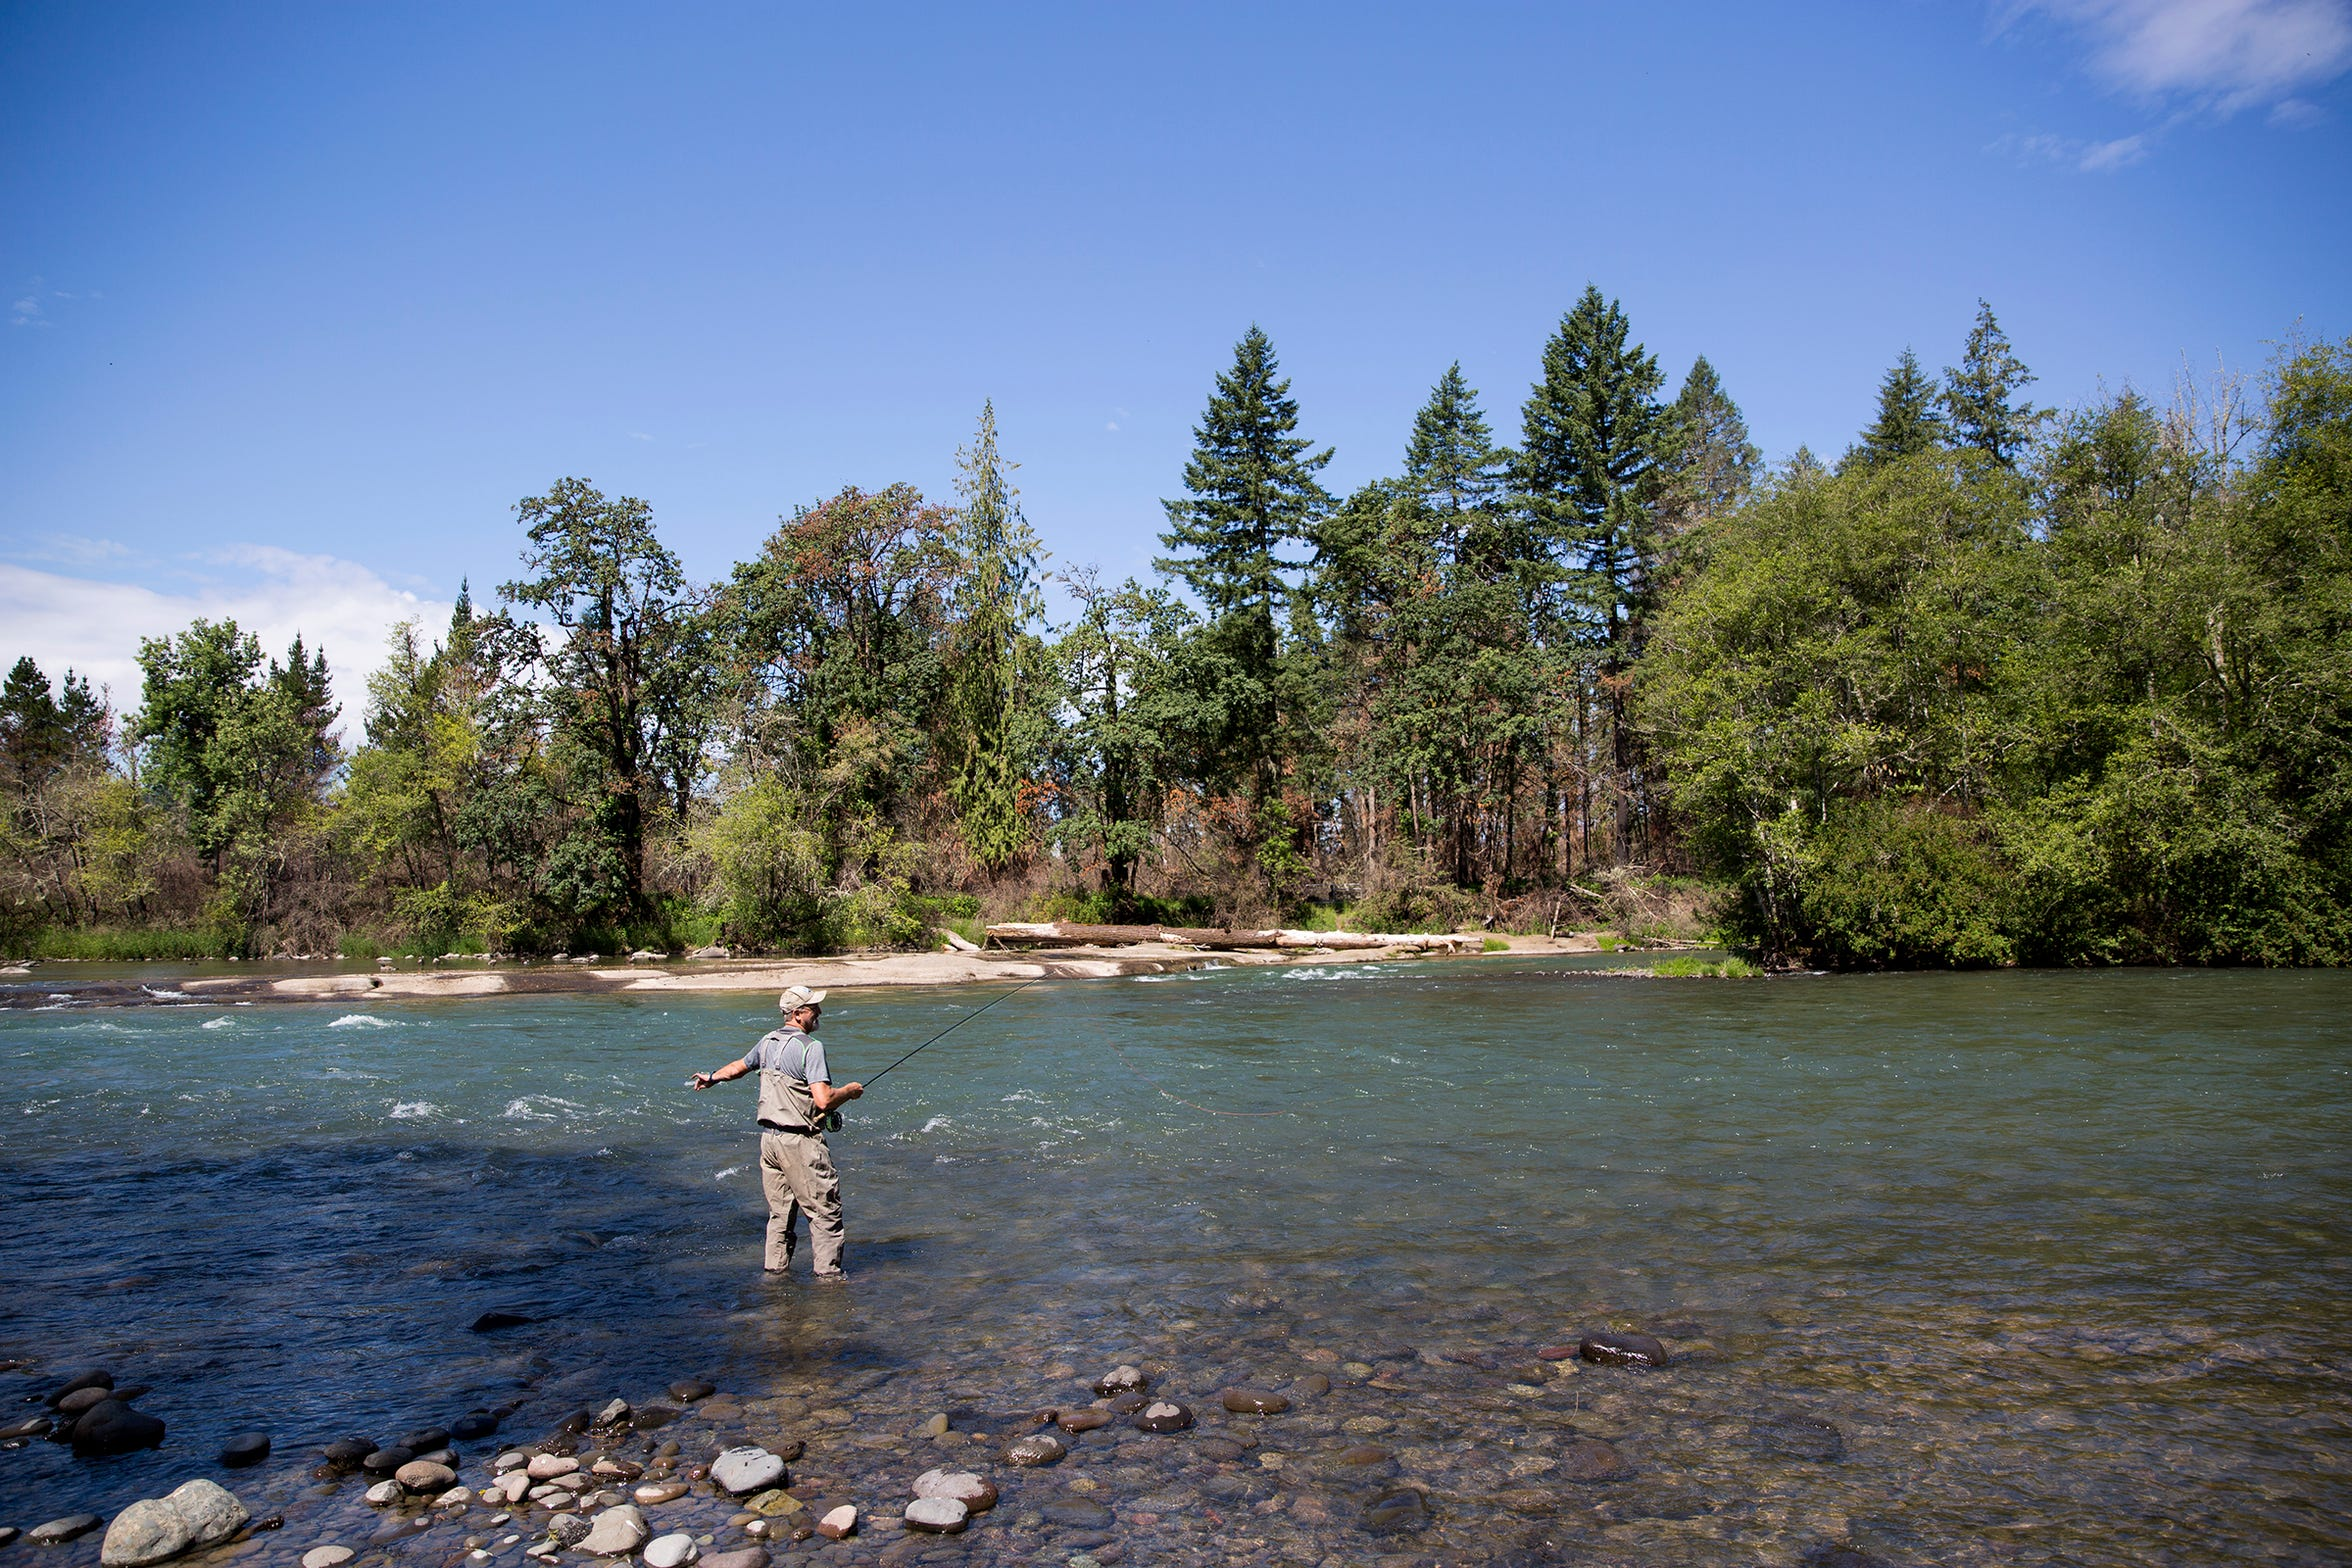 Dave Carpenter, a former fishing guide on the North Santiam River and long-time advocate for native fish, casts his fishing rod at North Santiam State Recreation Area in Lyons on June 26, 2019.